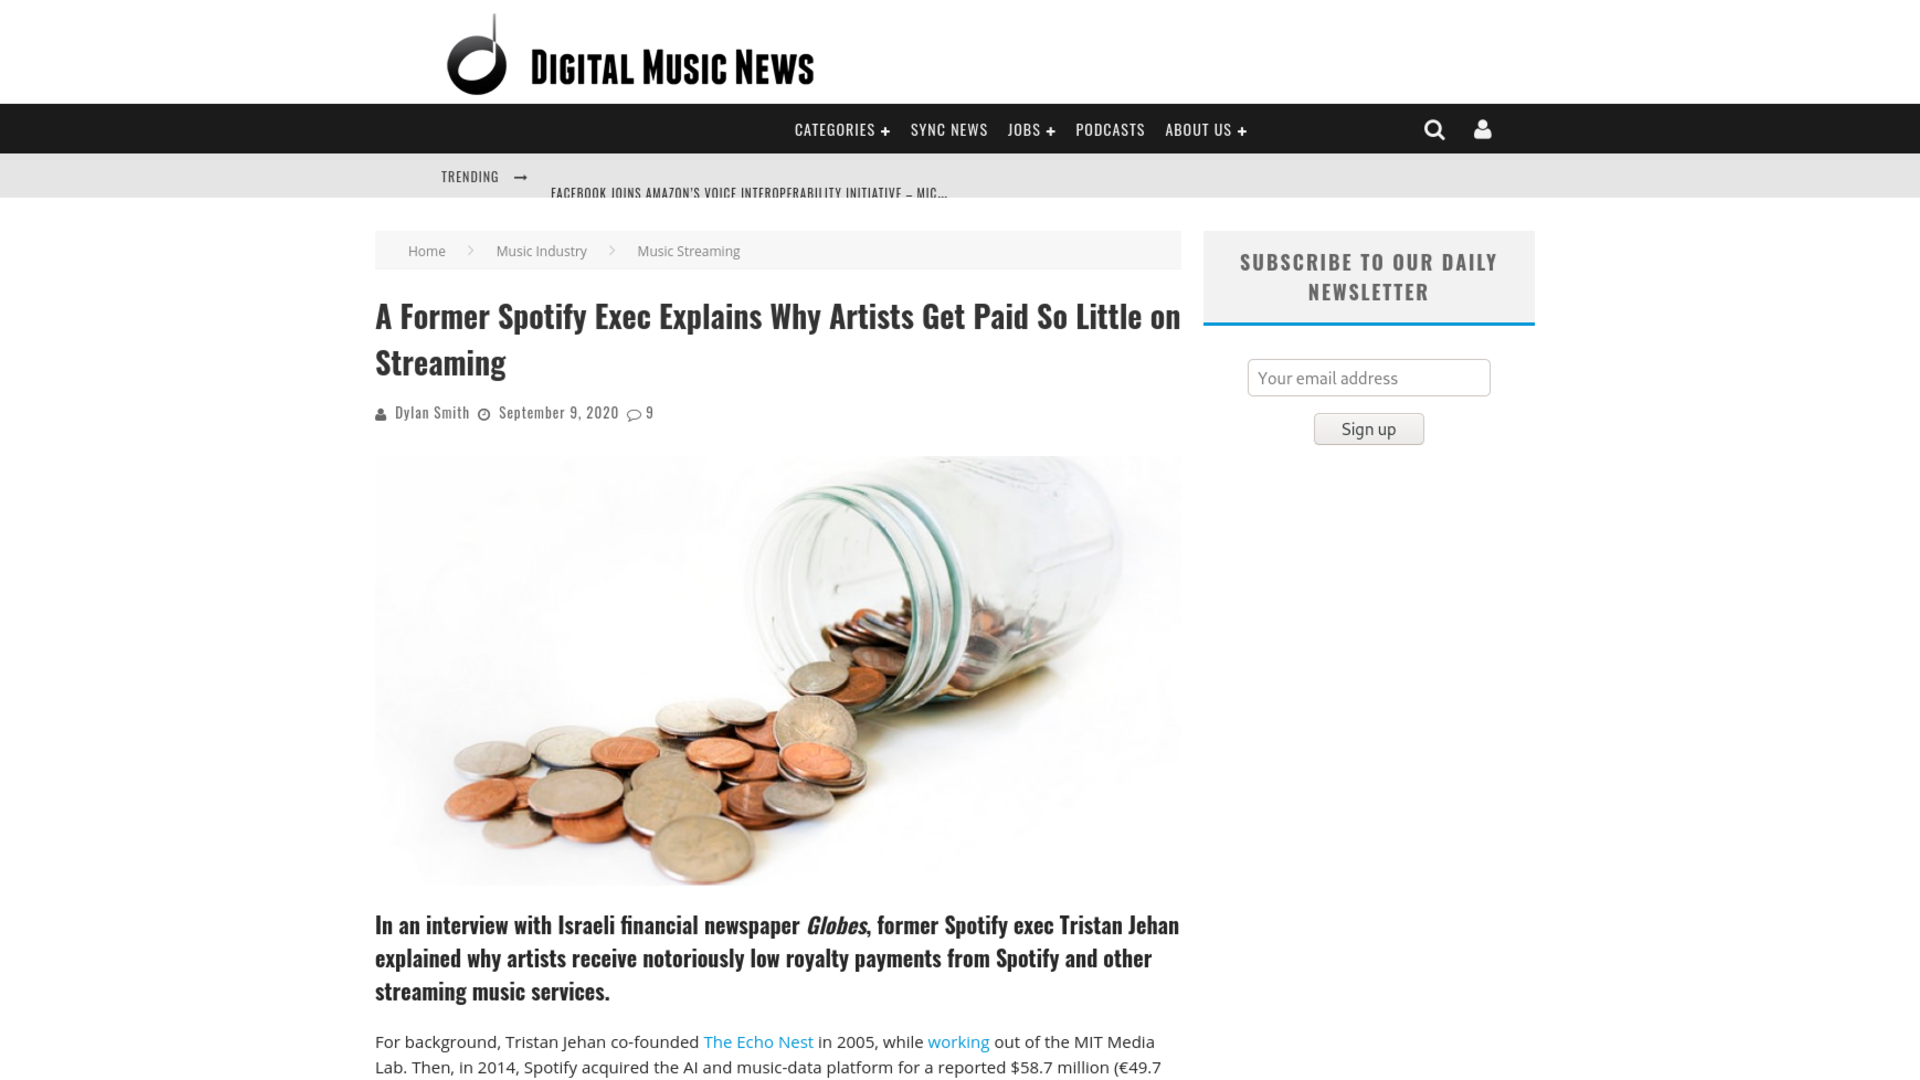 Fairness Rocks News A Former Spotify Exec Explains Why Artists Get Paid So Little on Streaming